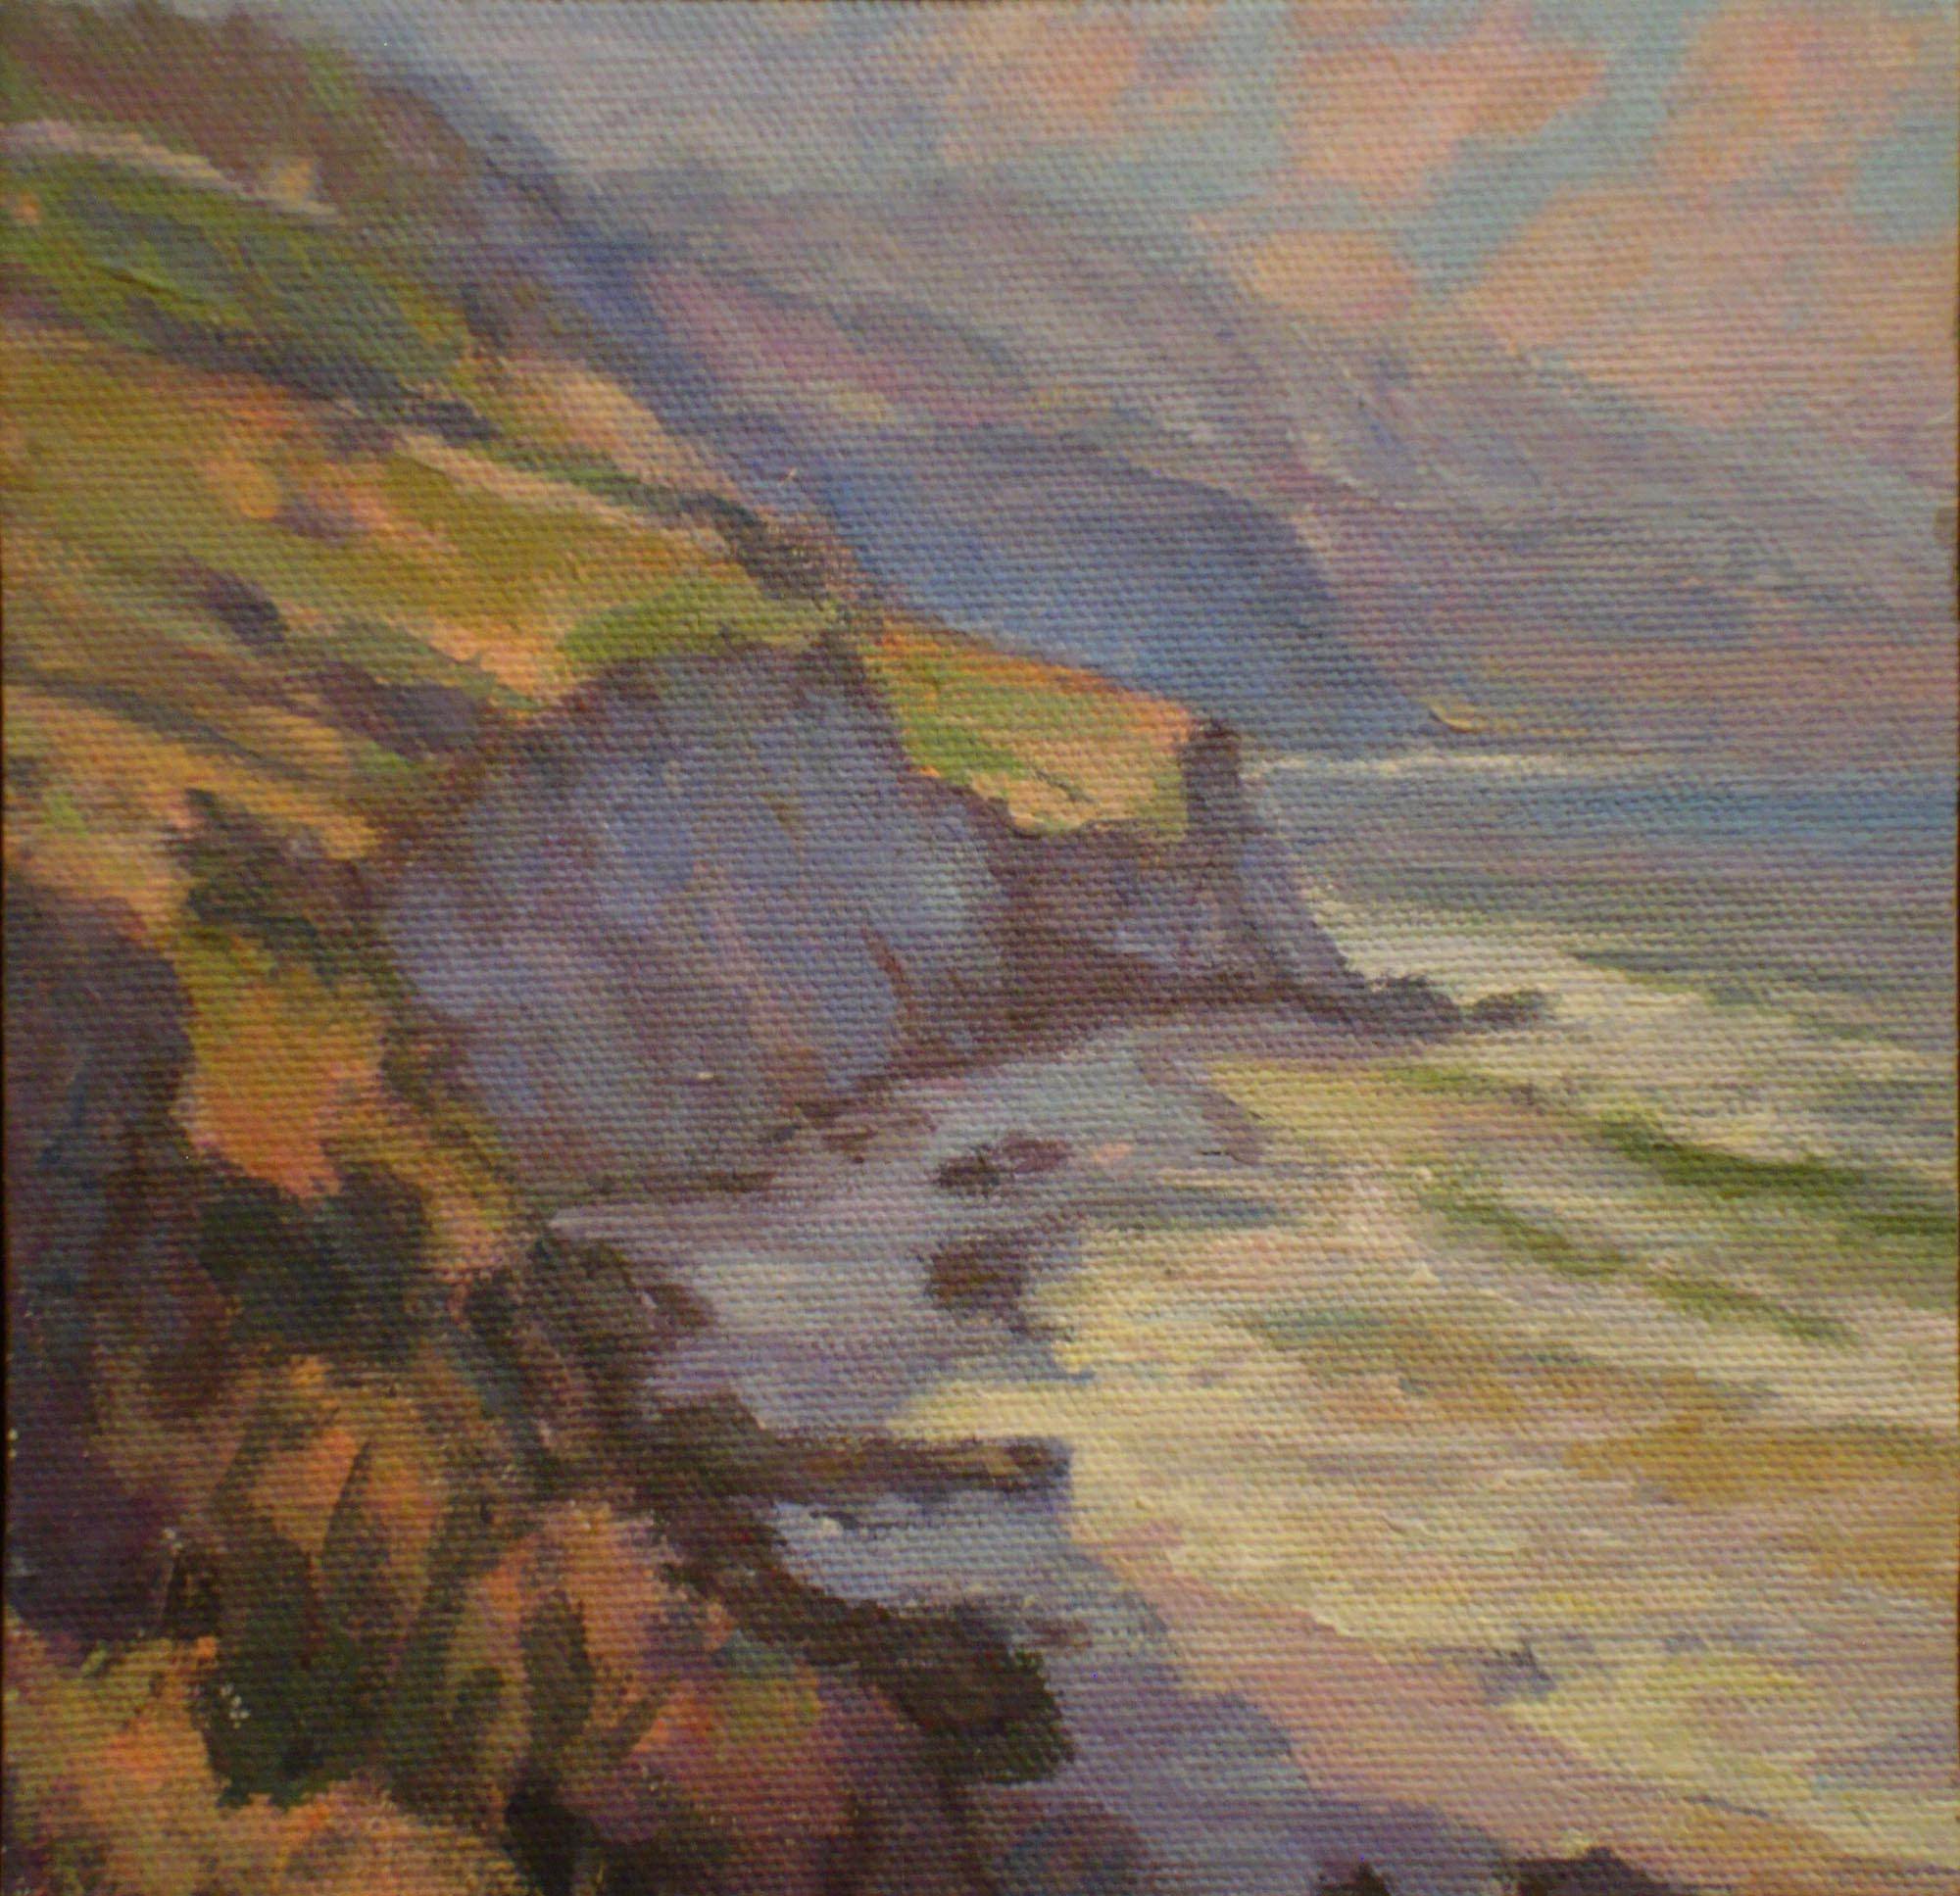 Fenton, The Lost Coast